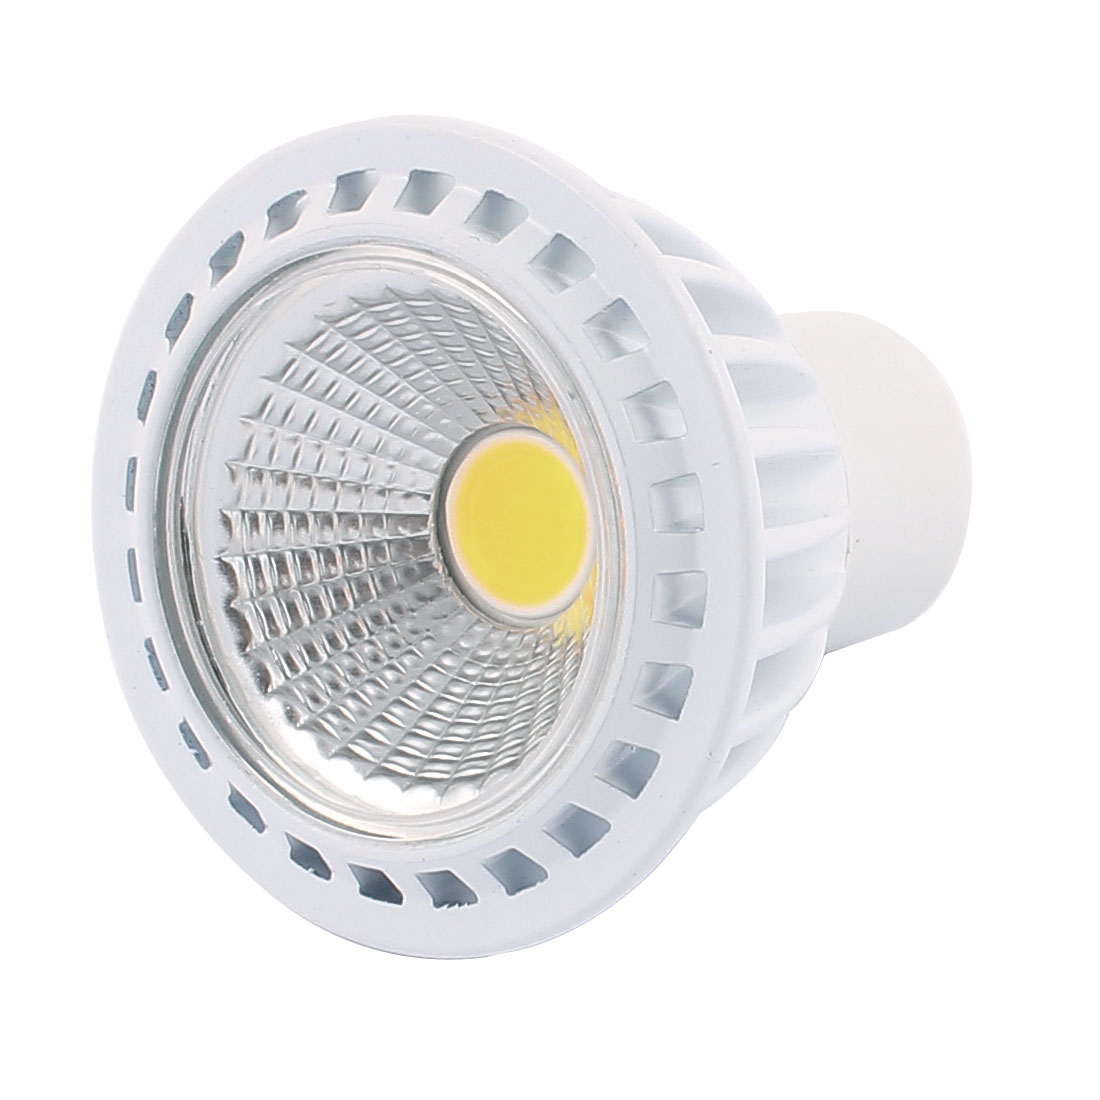 AC85-265V 3W Ultra Bright GU5.3 COB LED Spotlight Lamp Bulb Downlight Pure White